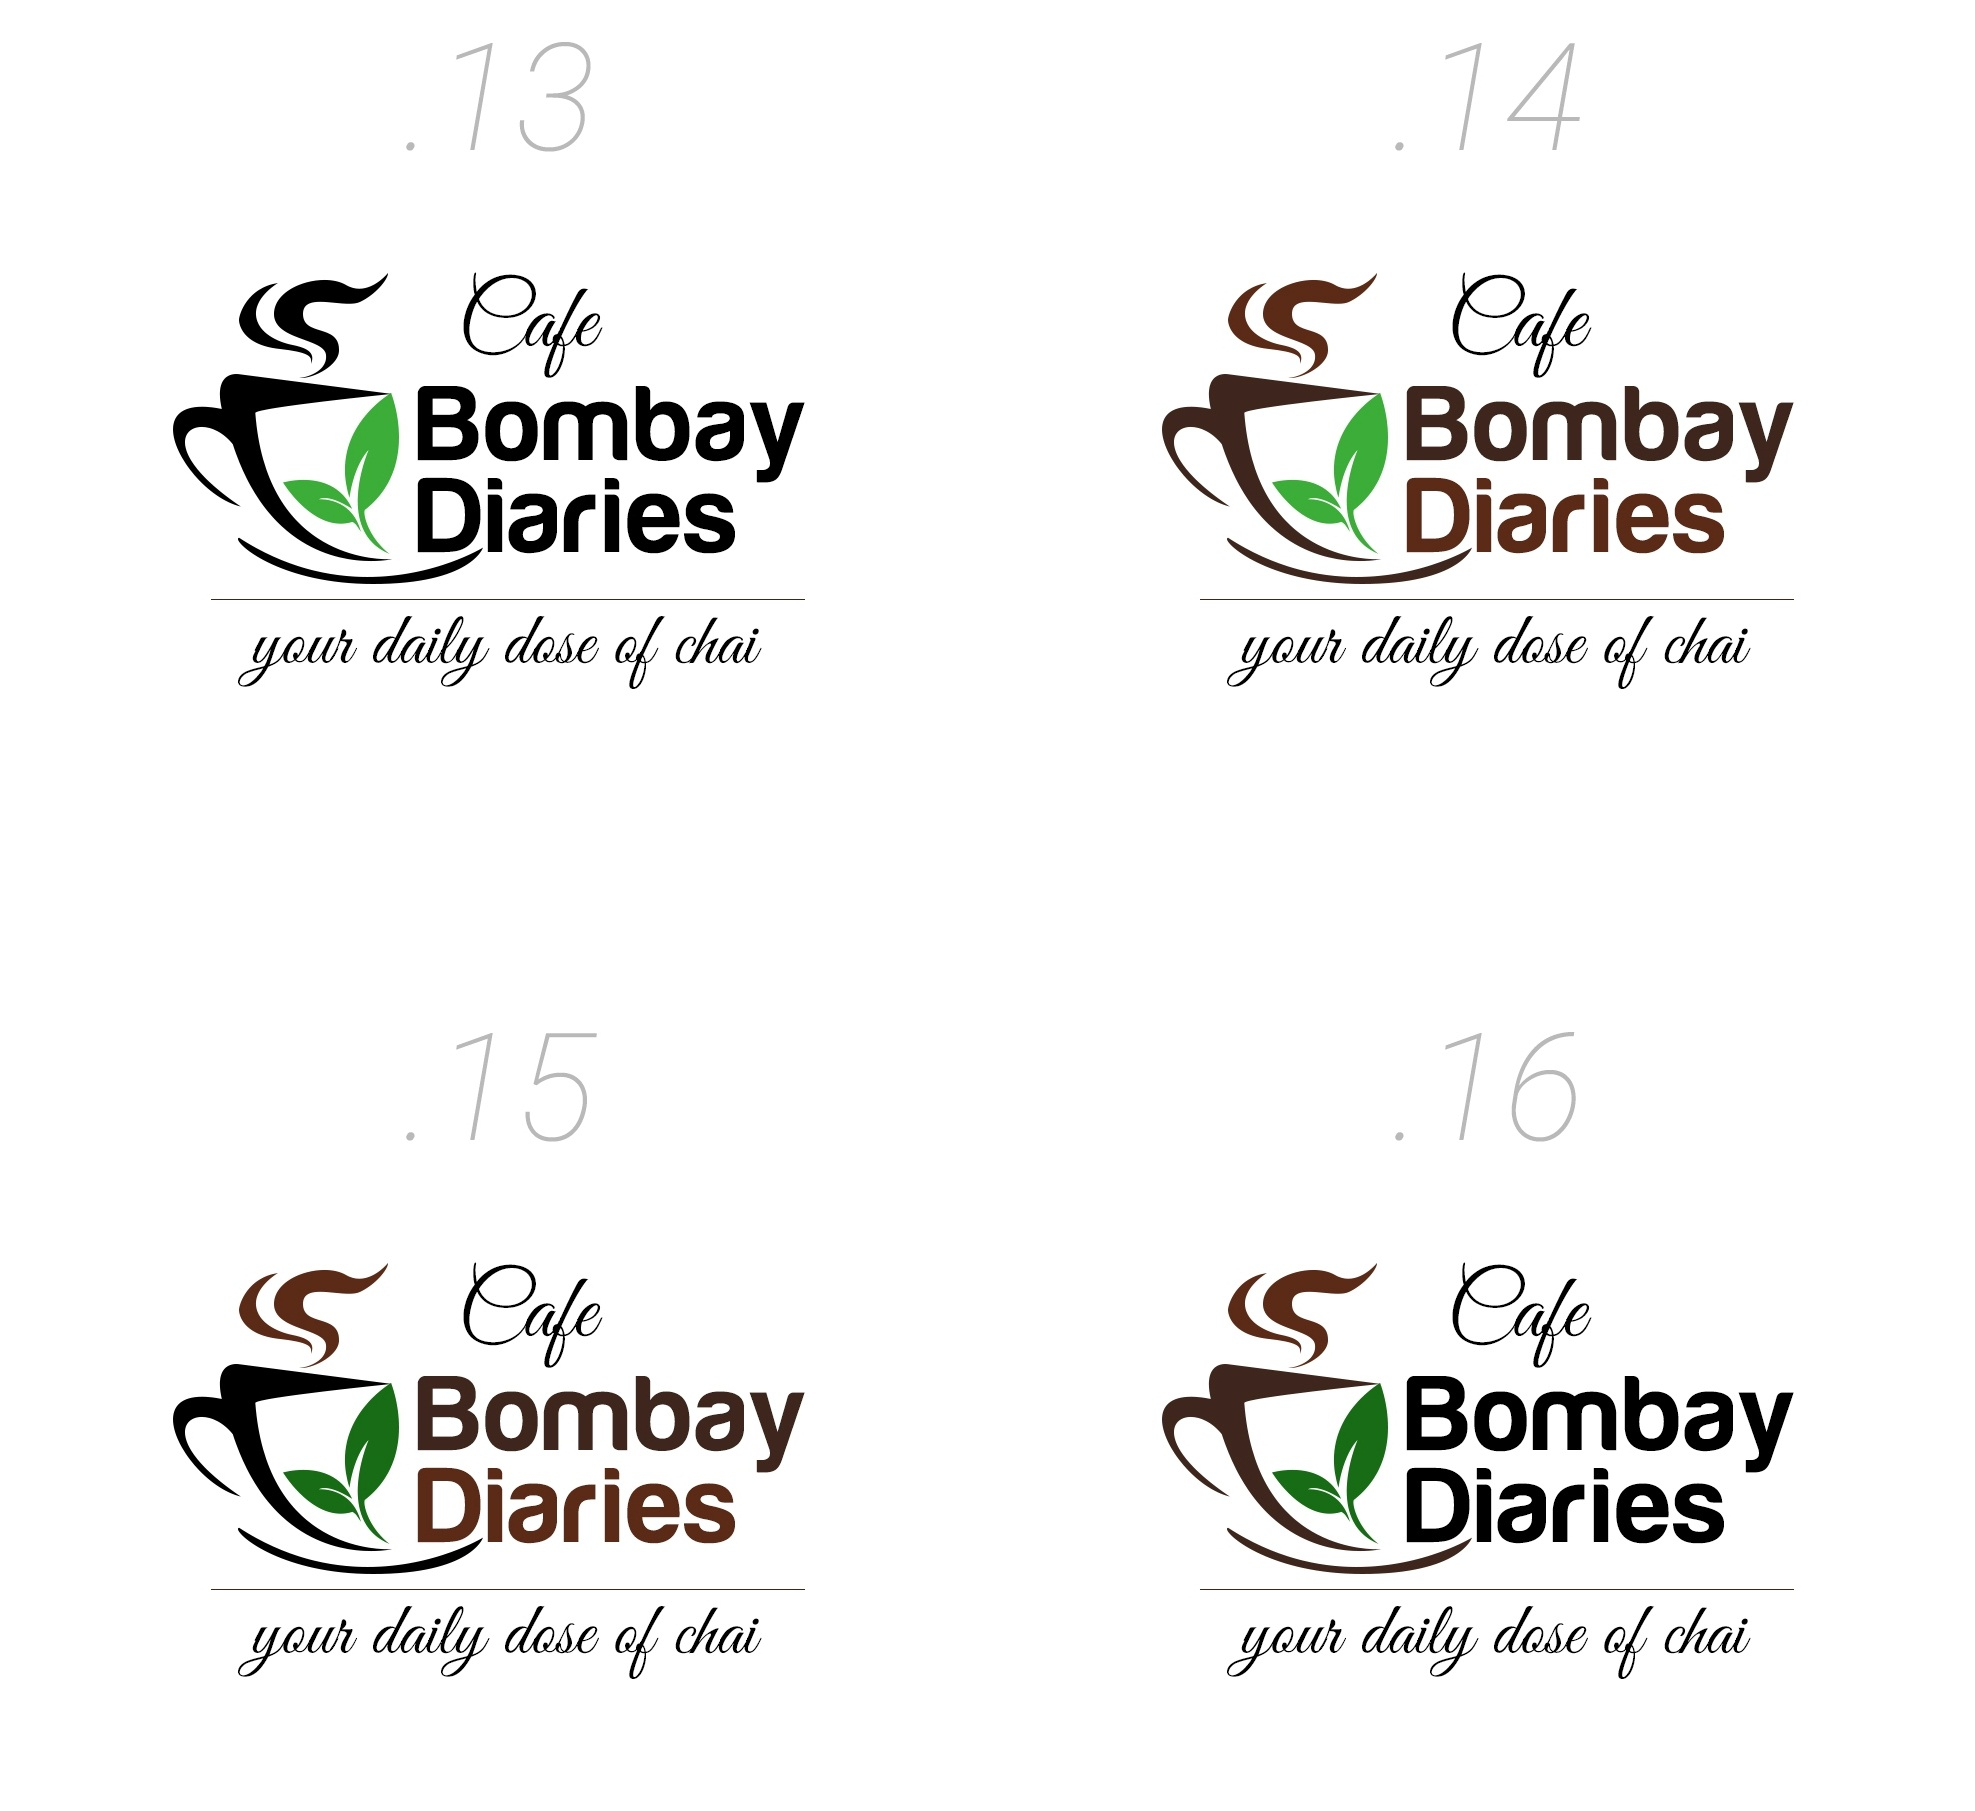 4_logo_cafe_bombay_diaries-copy